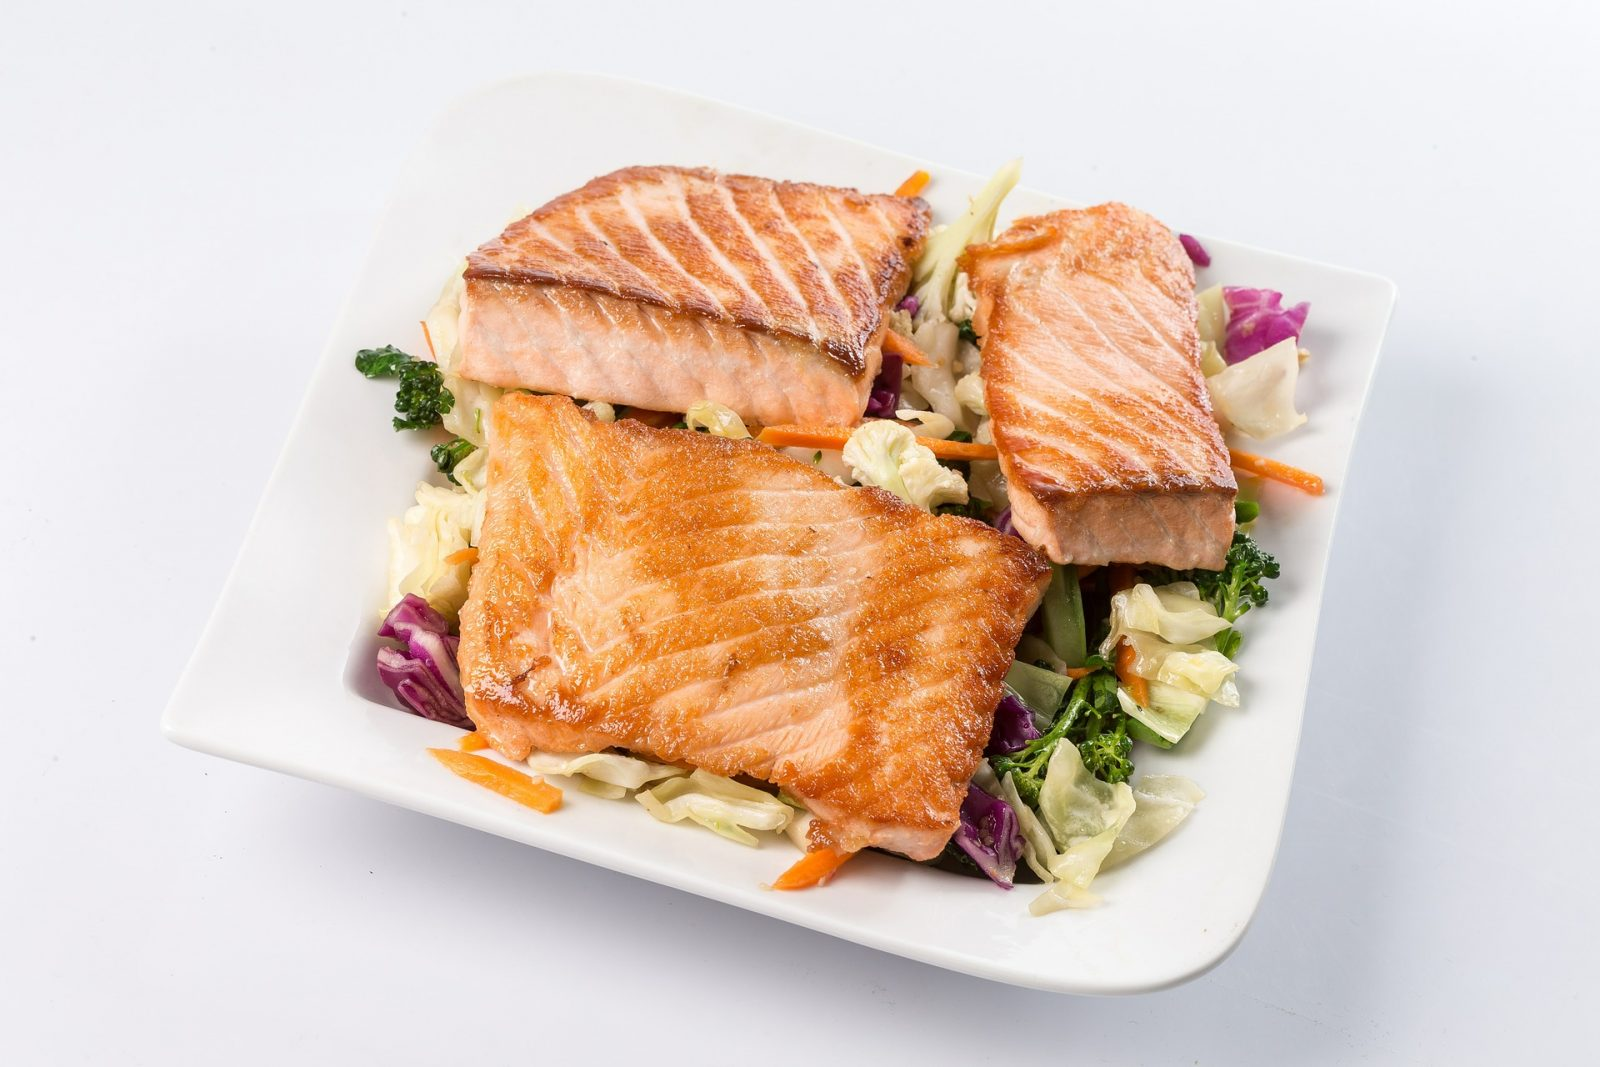 Pan Grilled Citrus Salmon on Vegetable Slaw